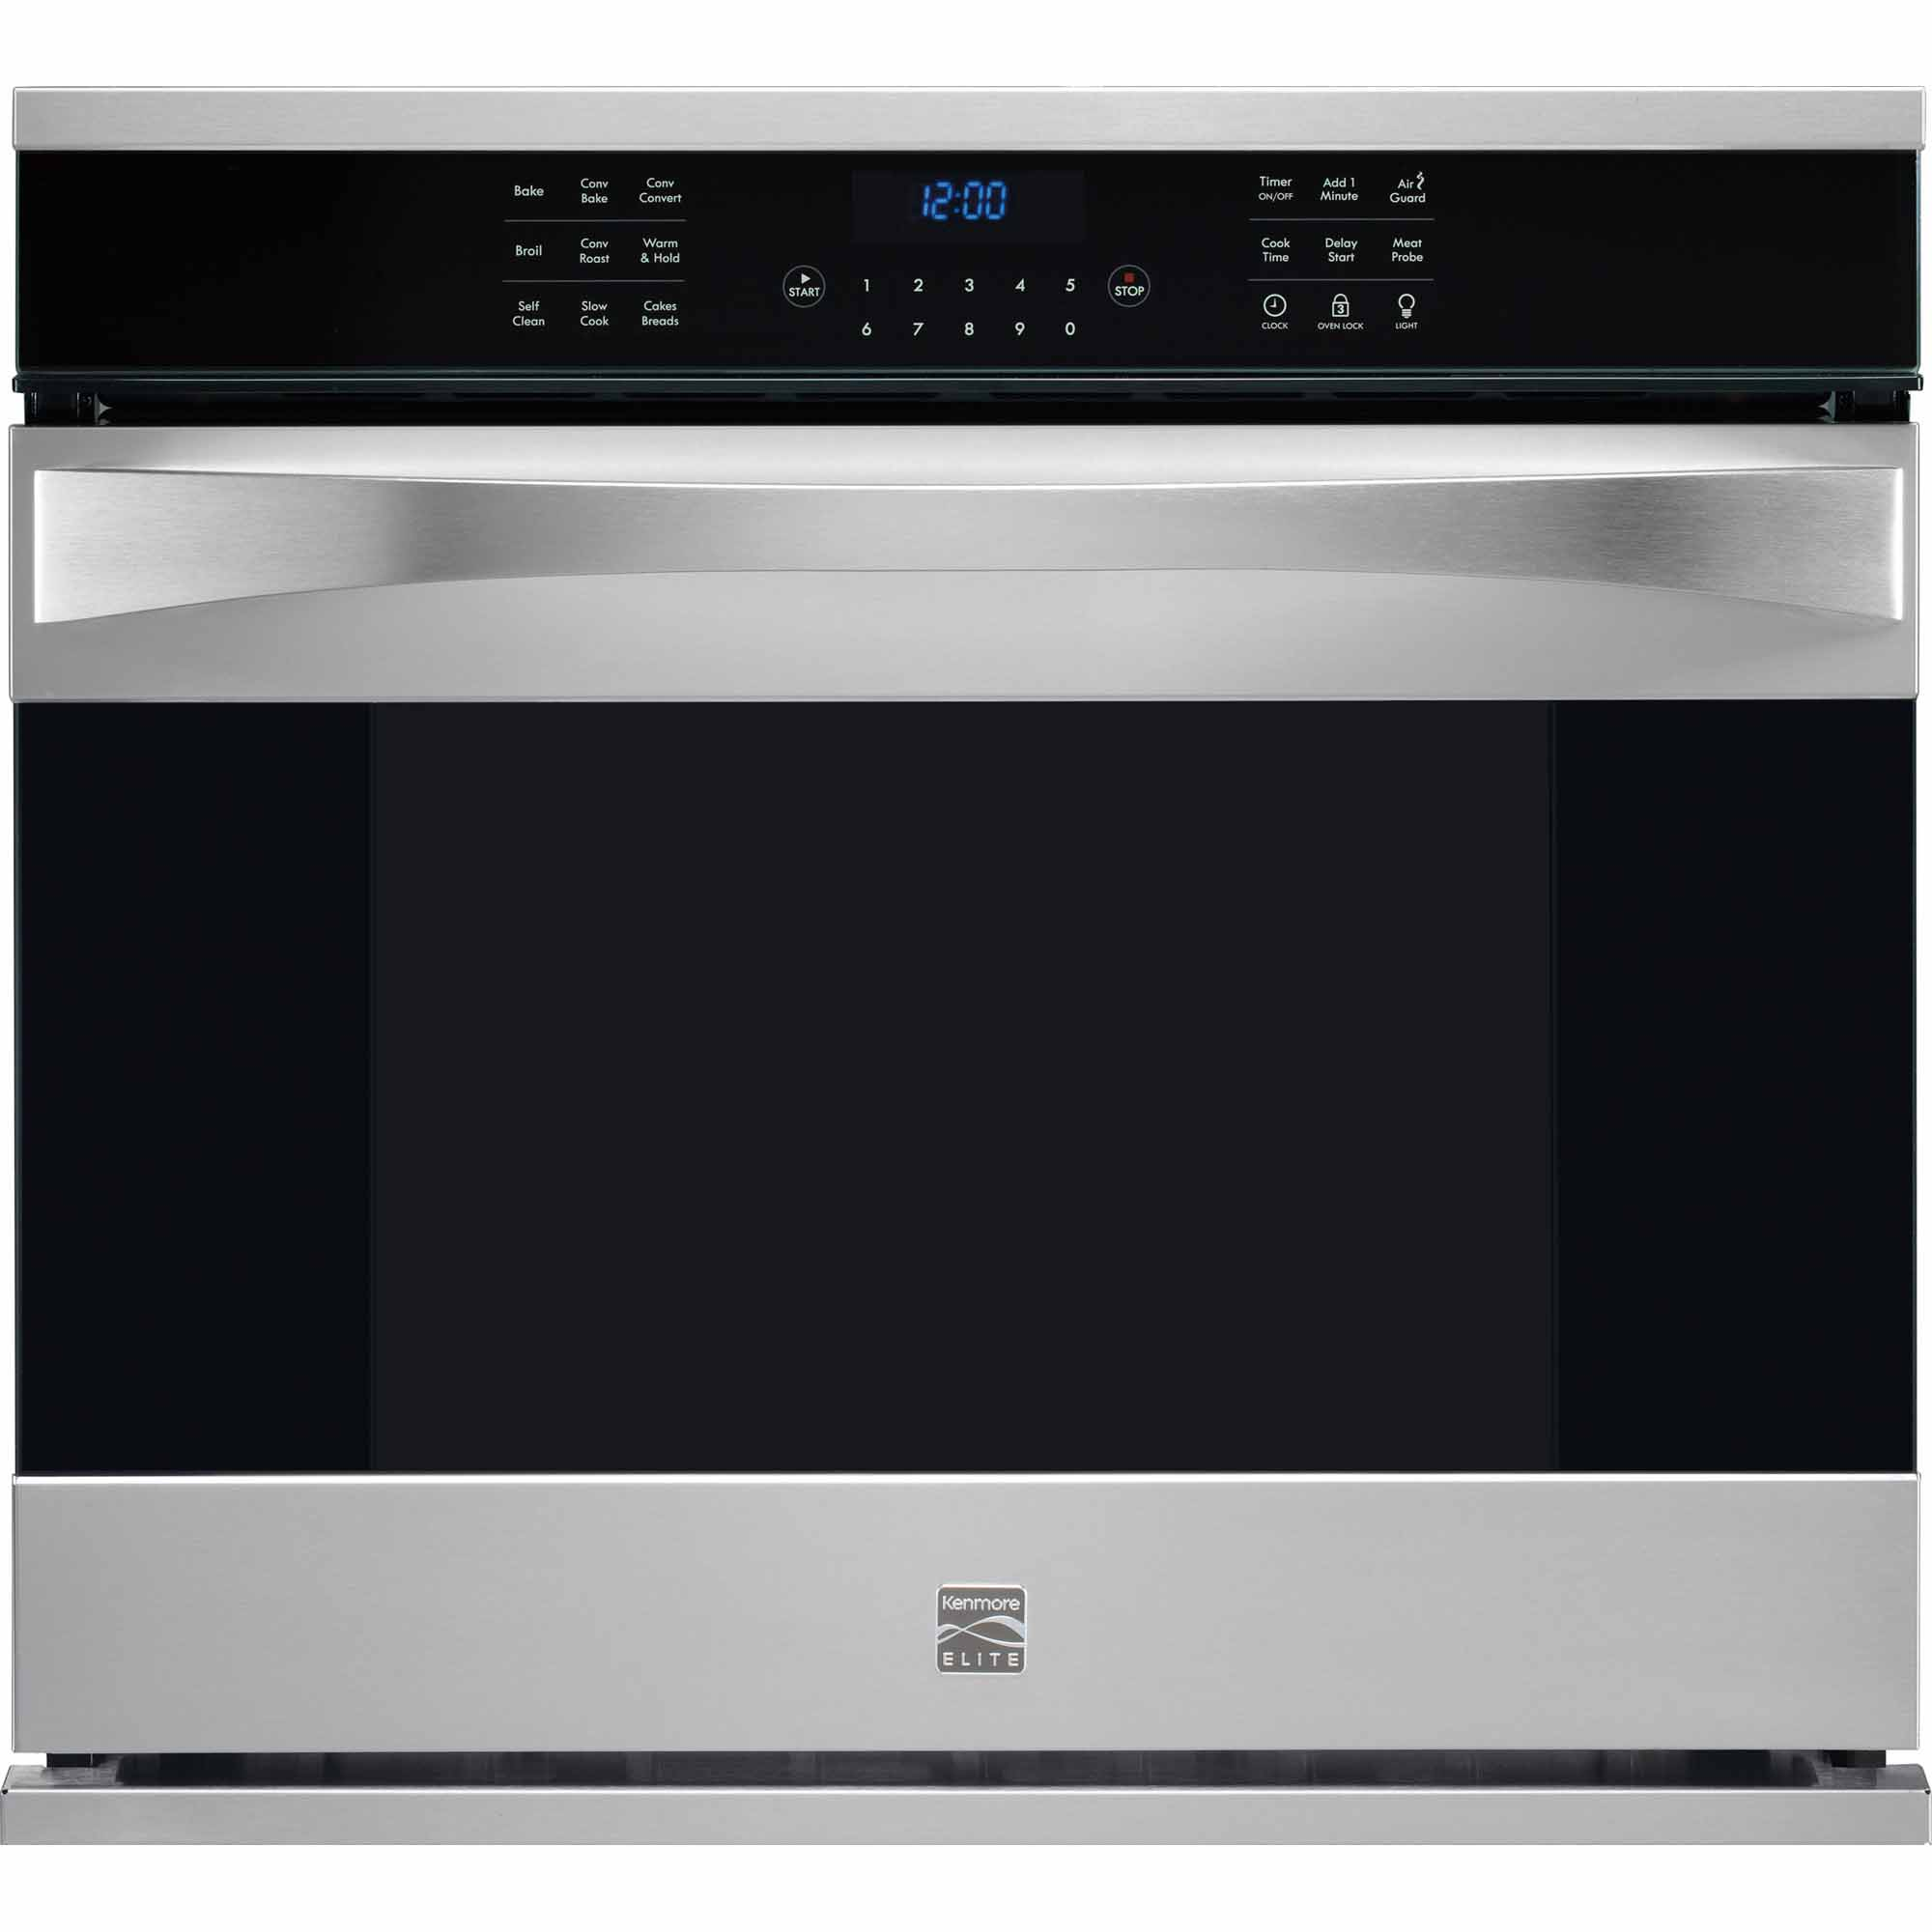 Kenmore Elite 48363 30 Electric Single Wall Oven - Stainless Steel